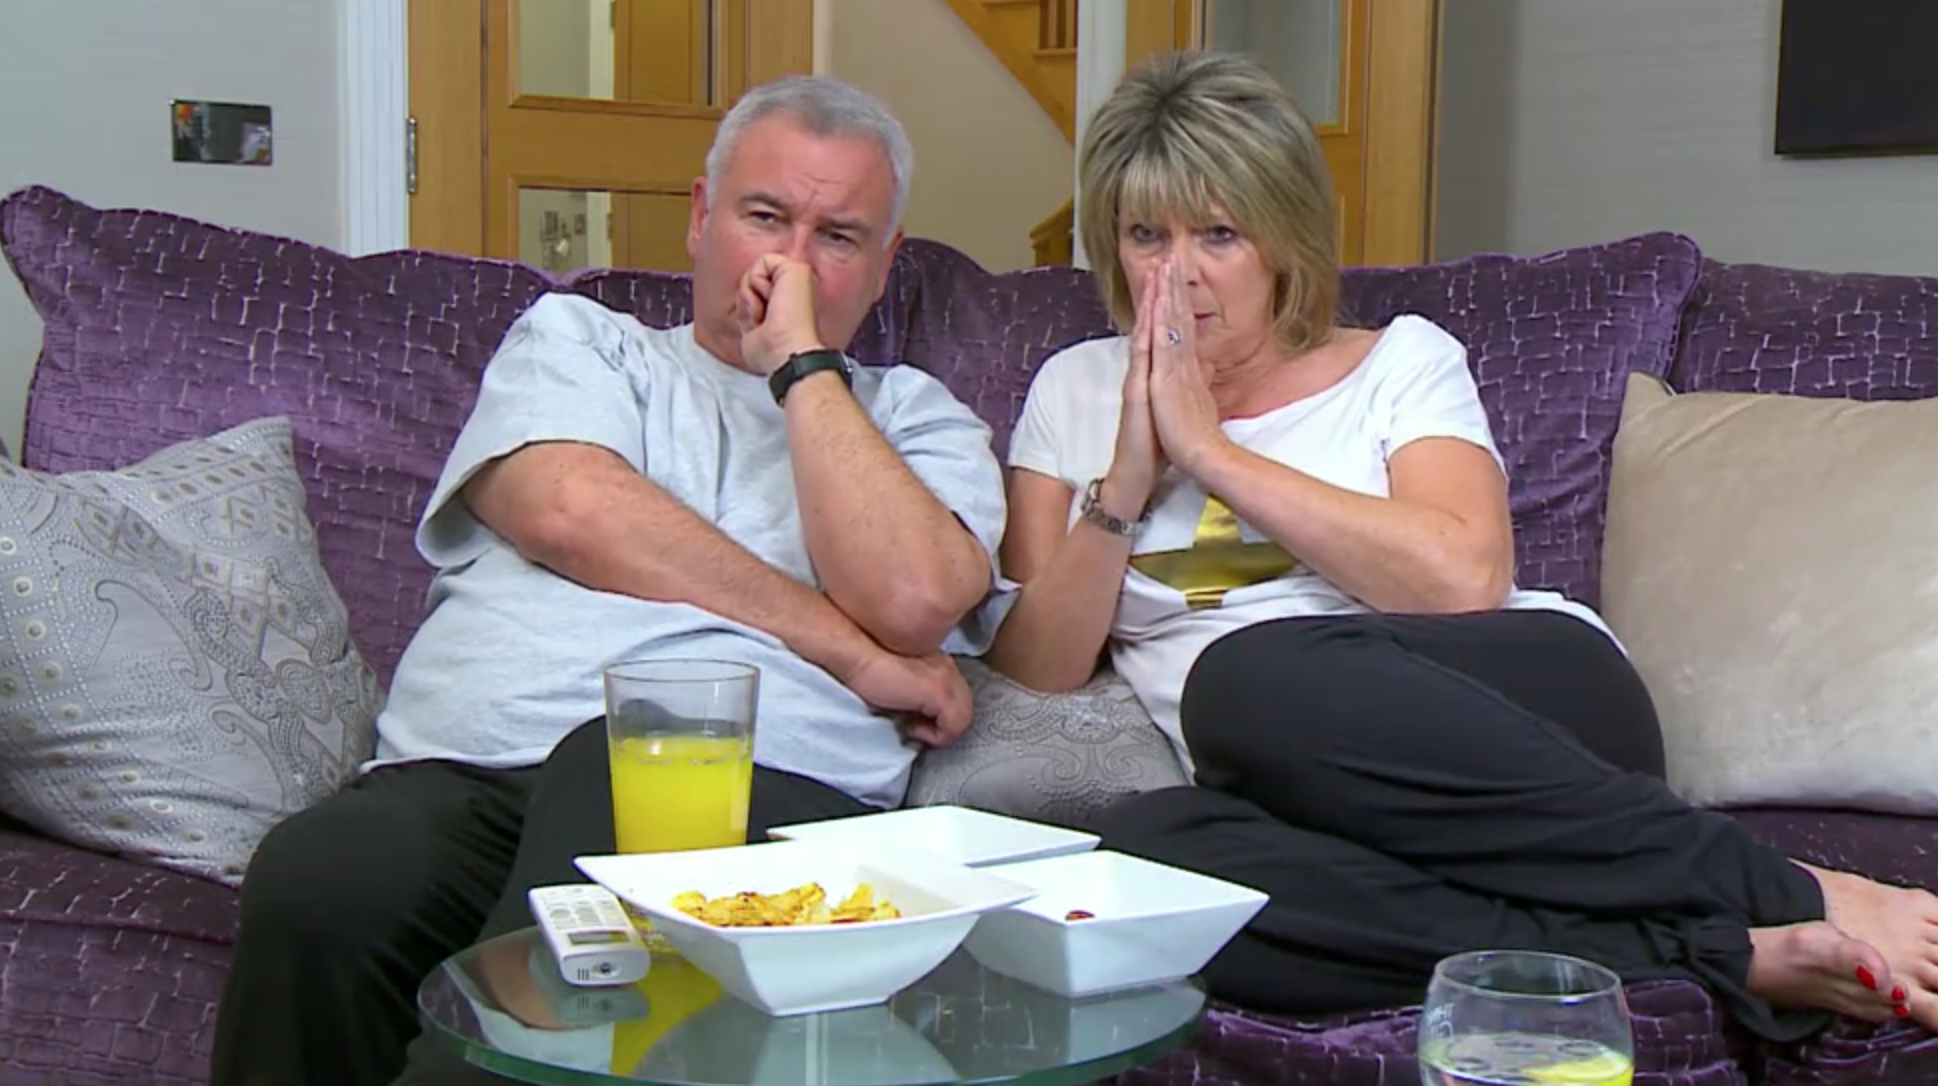 Eamonn Holmes responds to Gogglebox apology